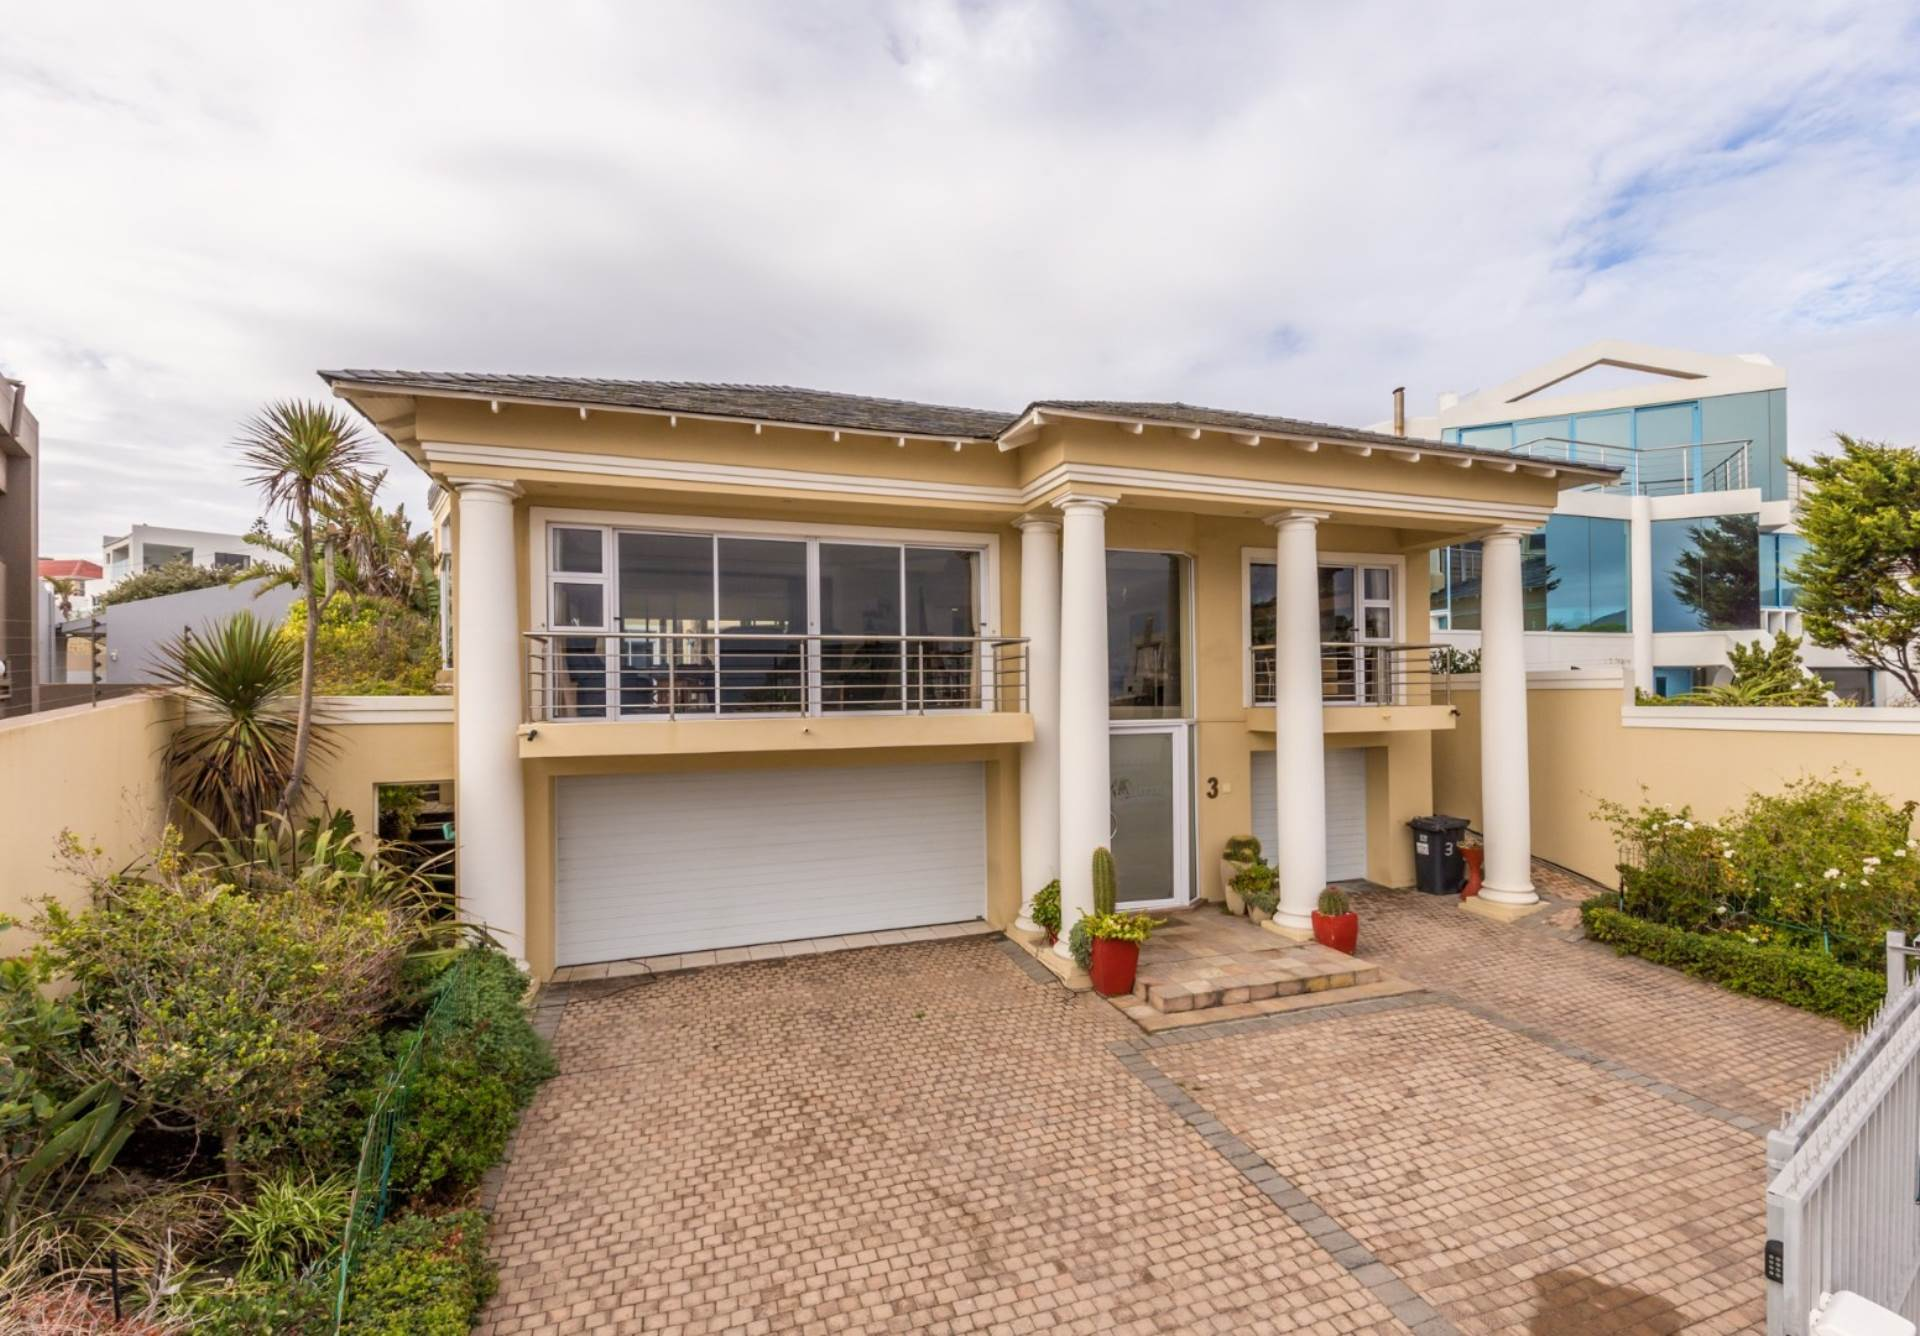 4 BedroomHouse For Sale In Bloubergstrand